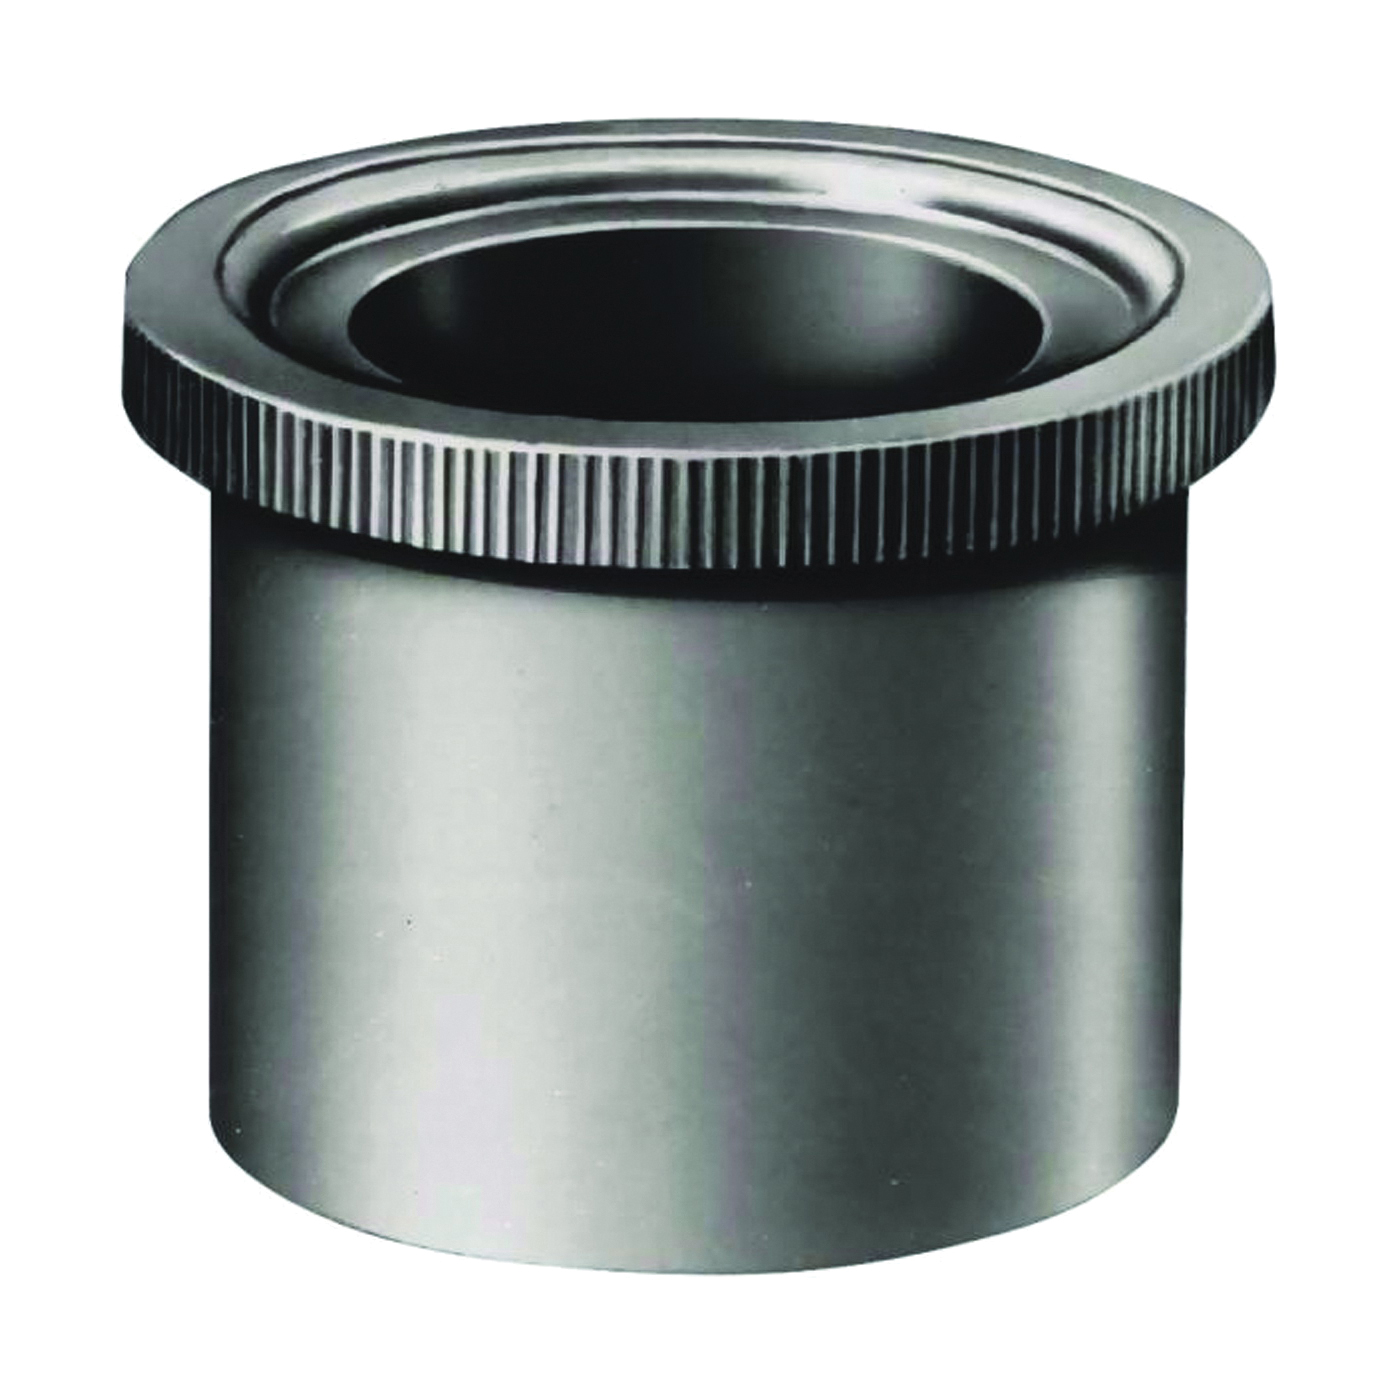 Picture of Carlon E950GE-CAR Conduit Bushing, 1-1/4 x3/4 in Trade, Bell x Spigot, 42.4 mm Dia, 1-15/32 in L, PVC, Gray